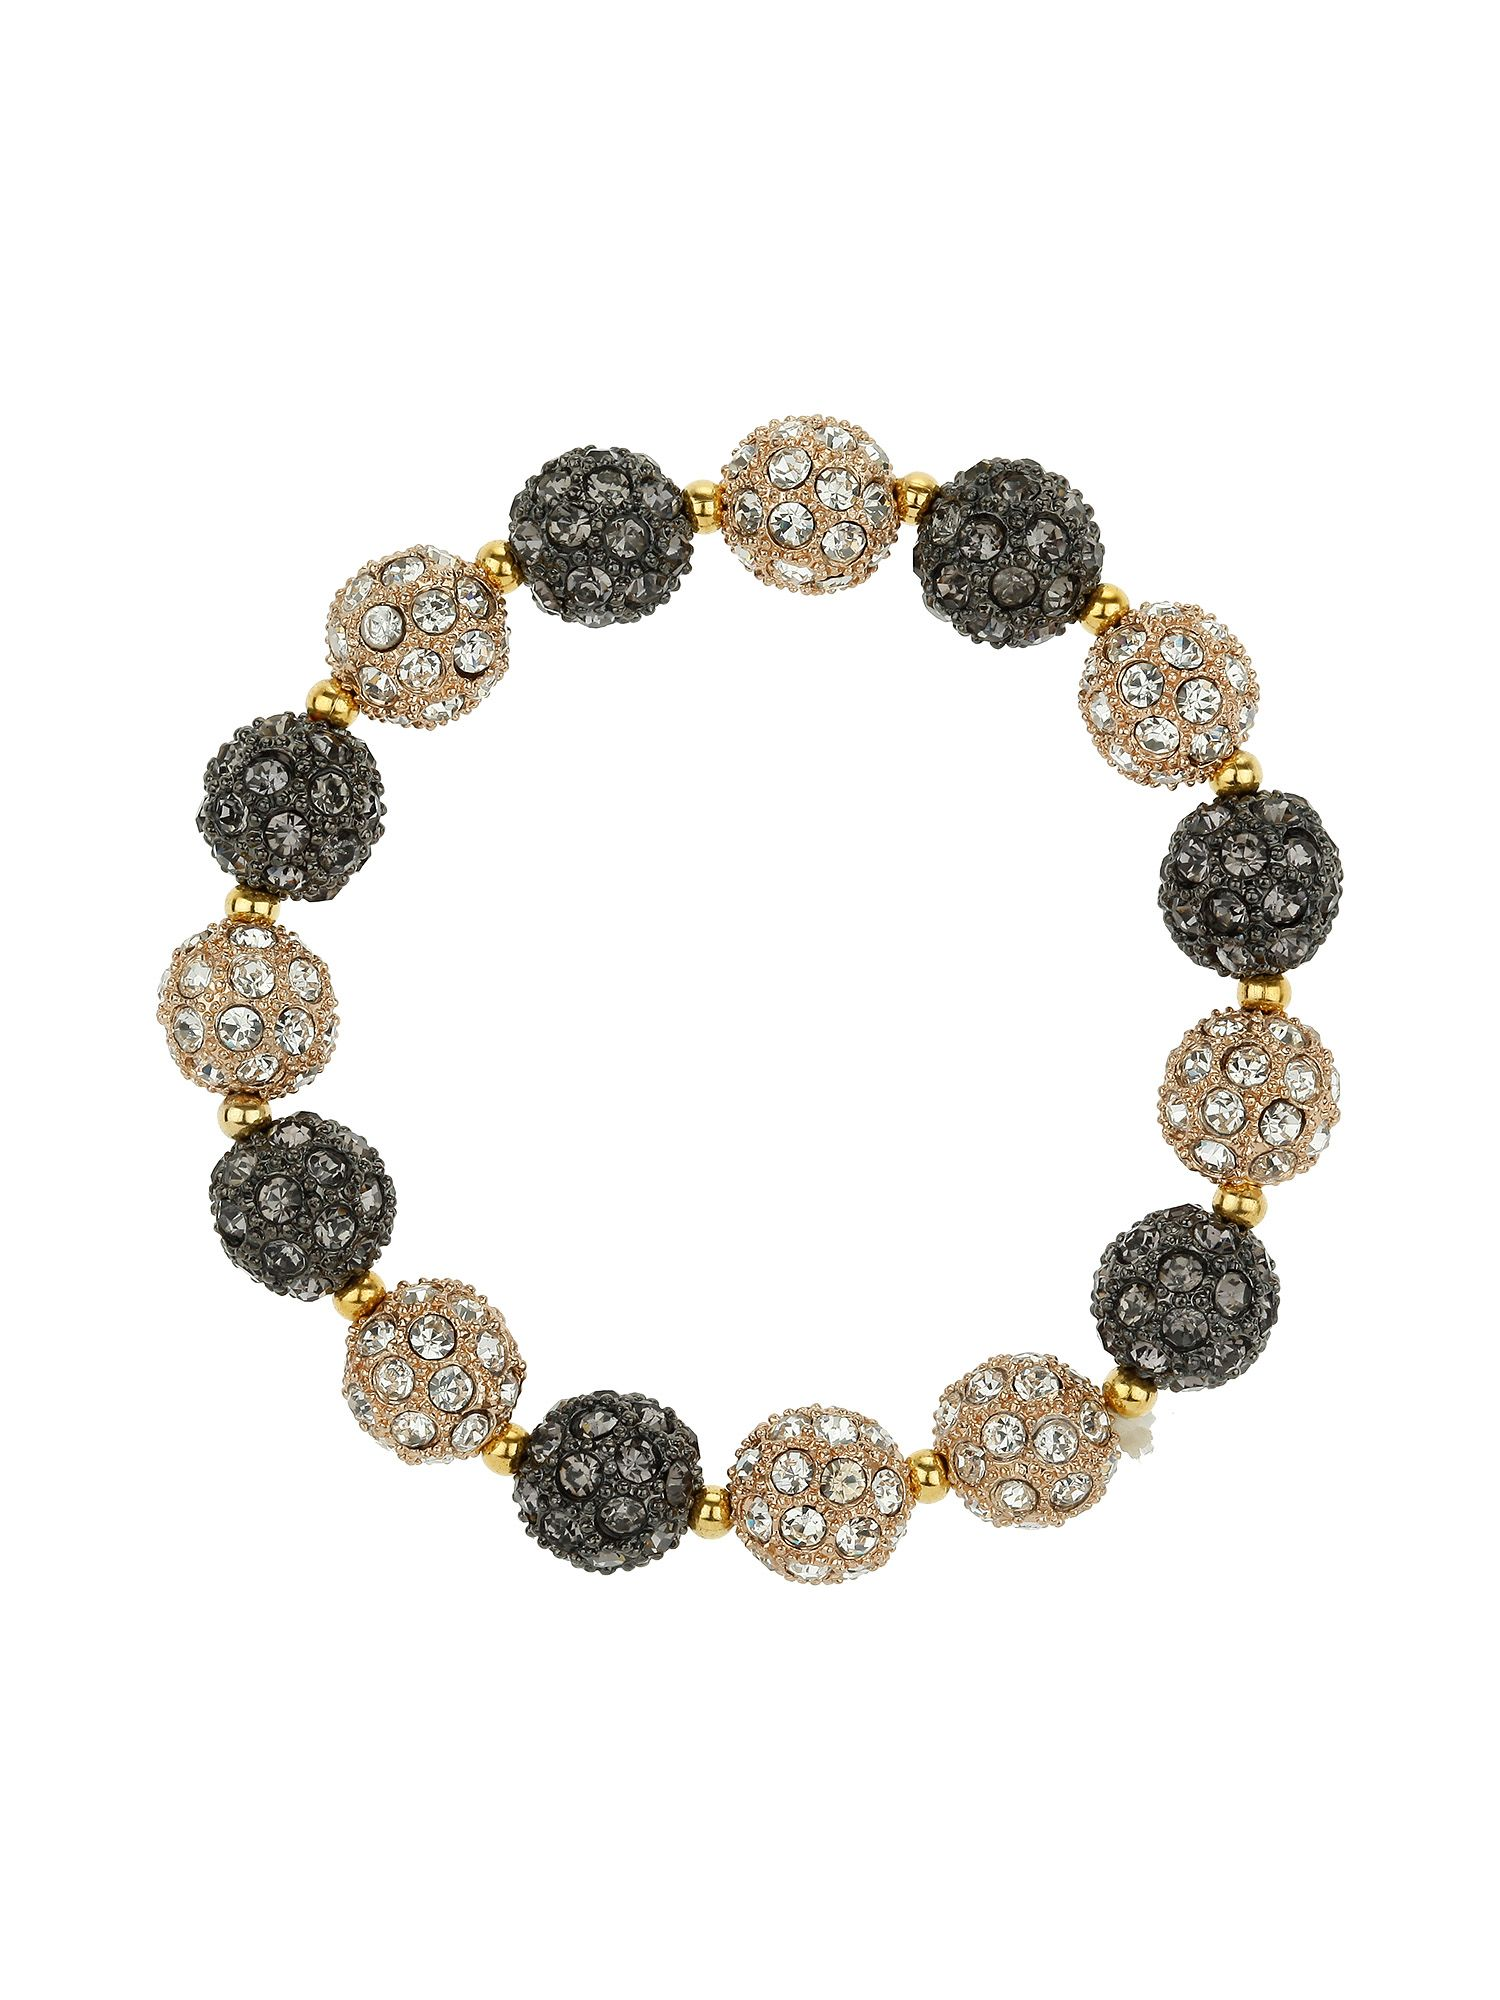 Heavy 15 pc ball bracelet